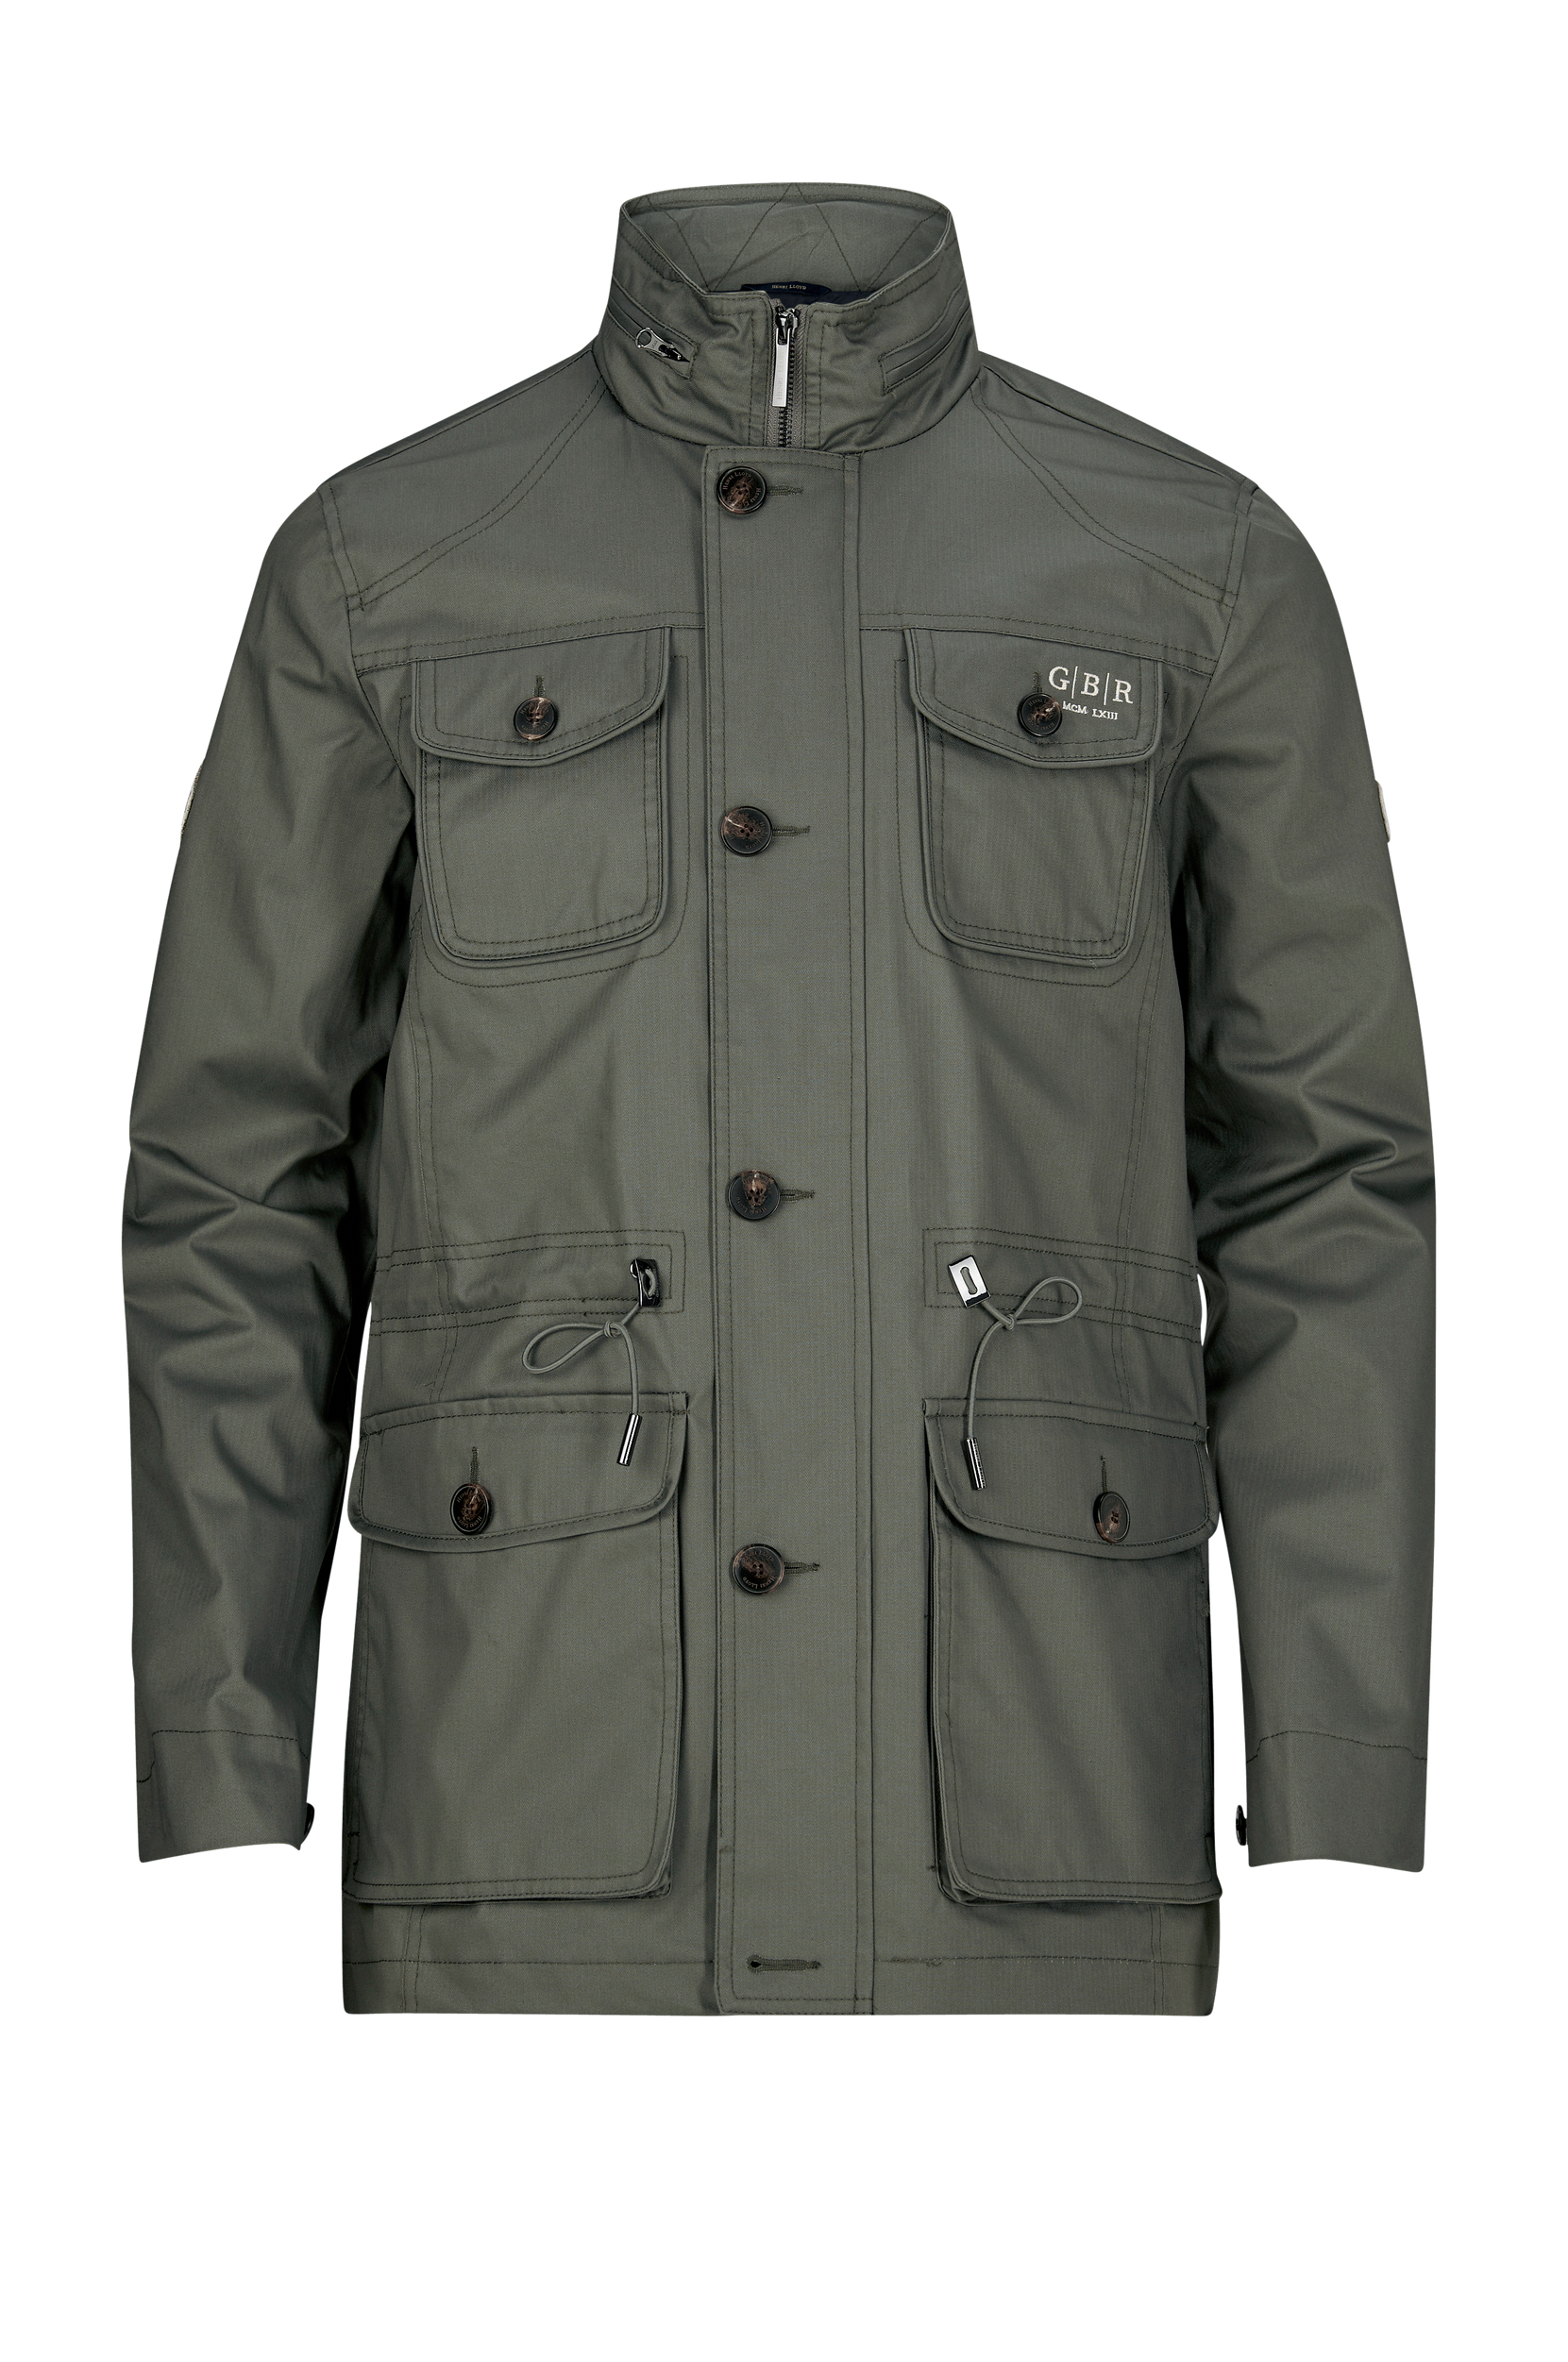 Jacka Gavington Gbr Field Jacket thumbnail